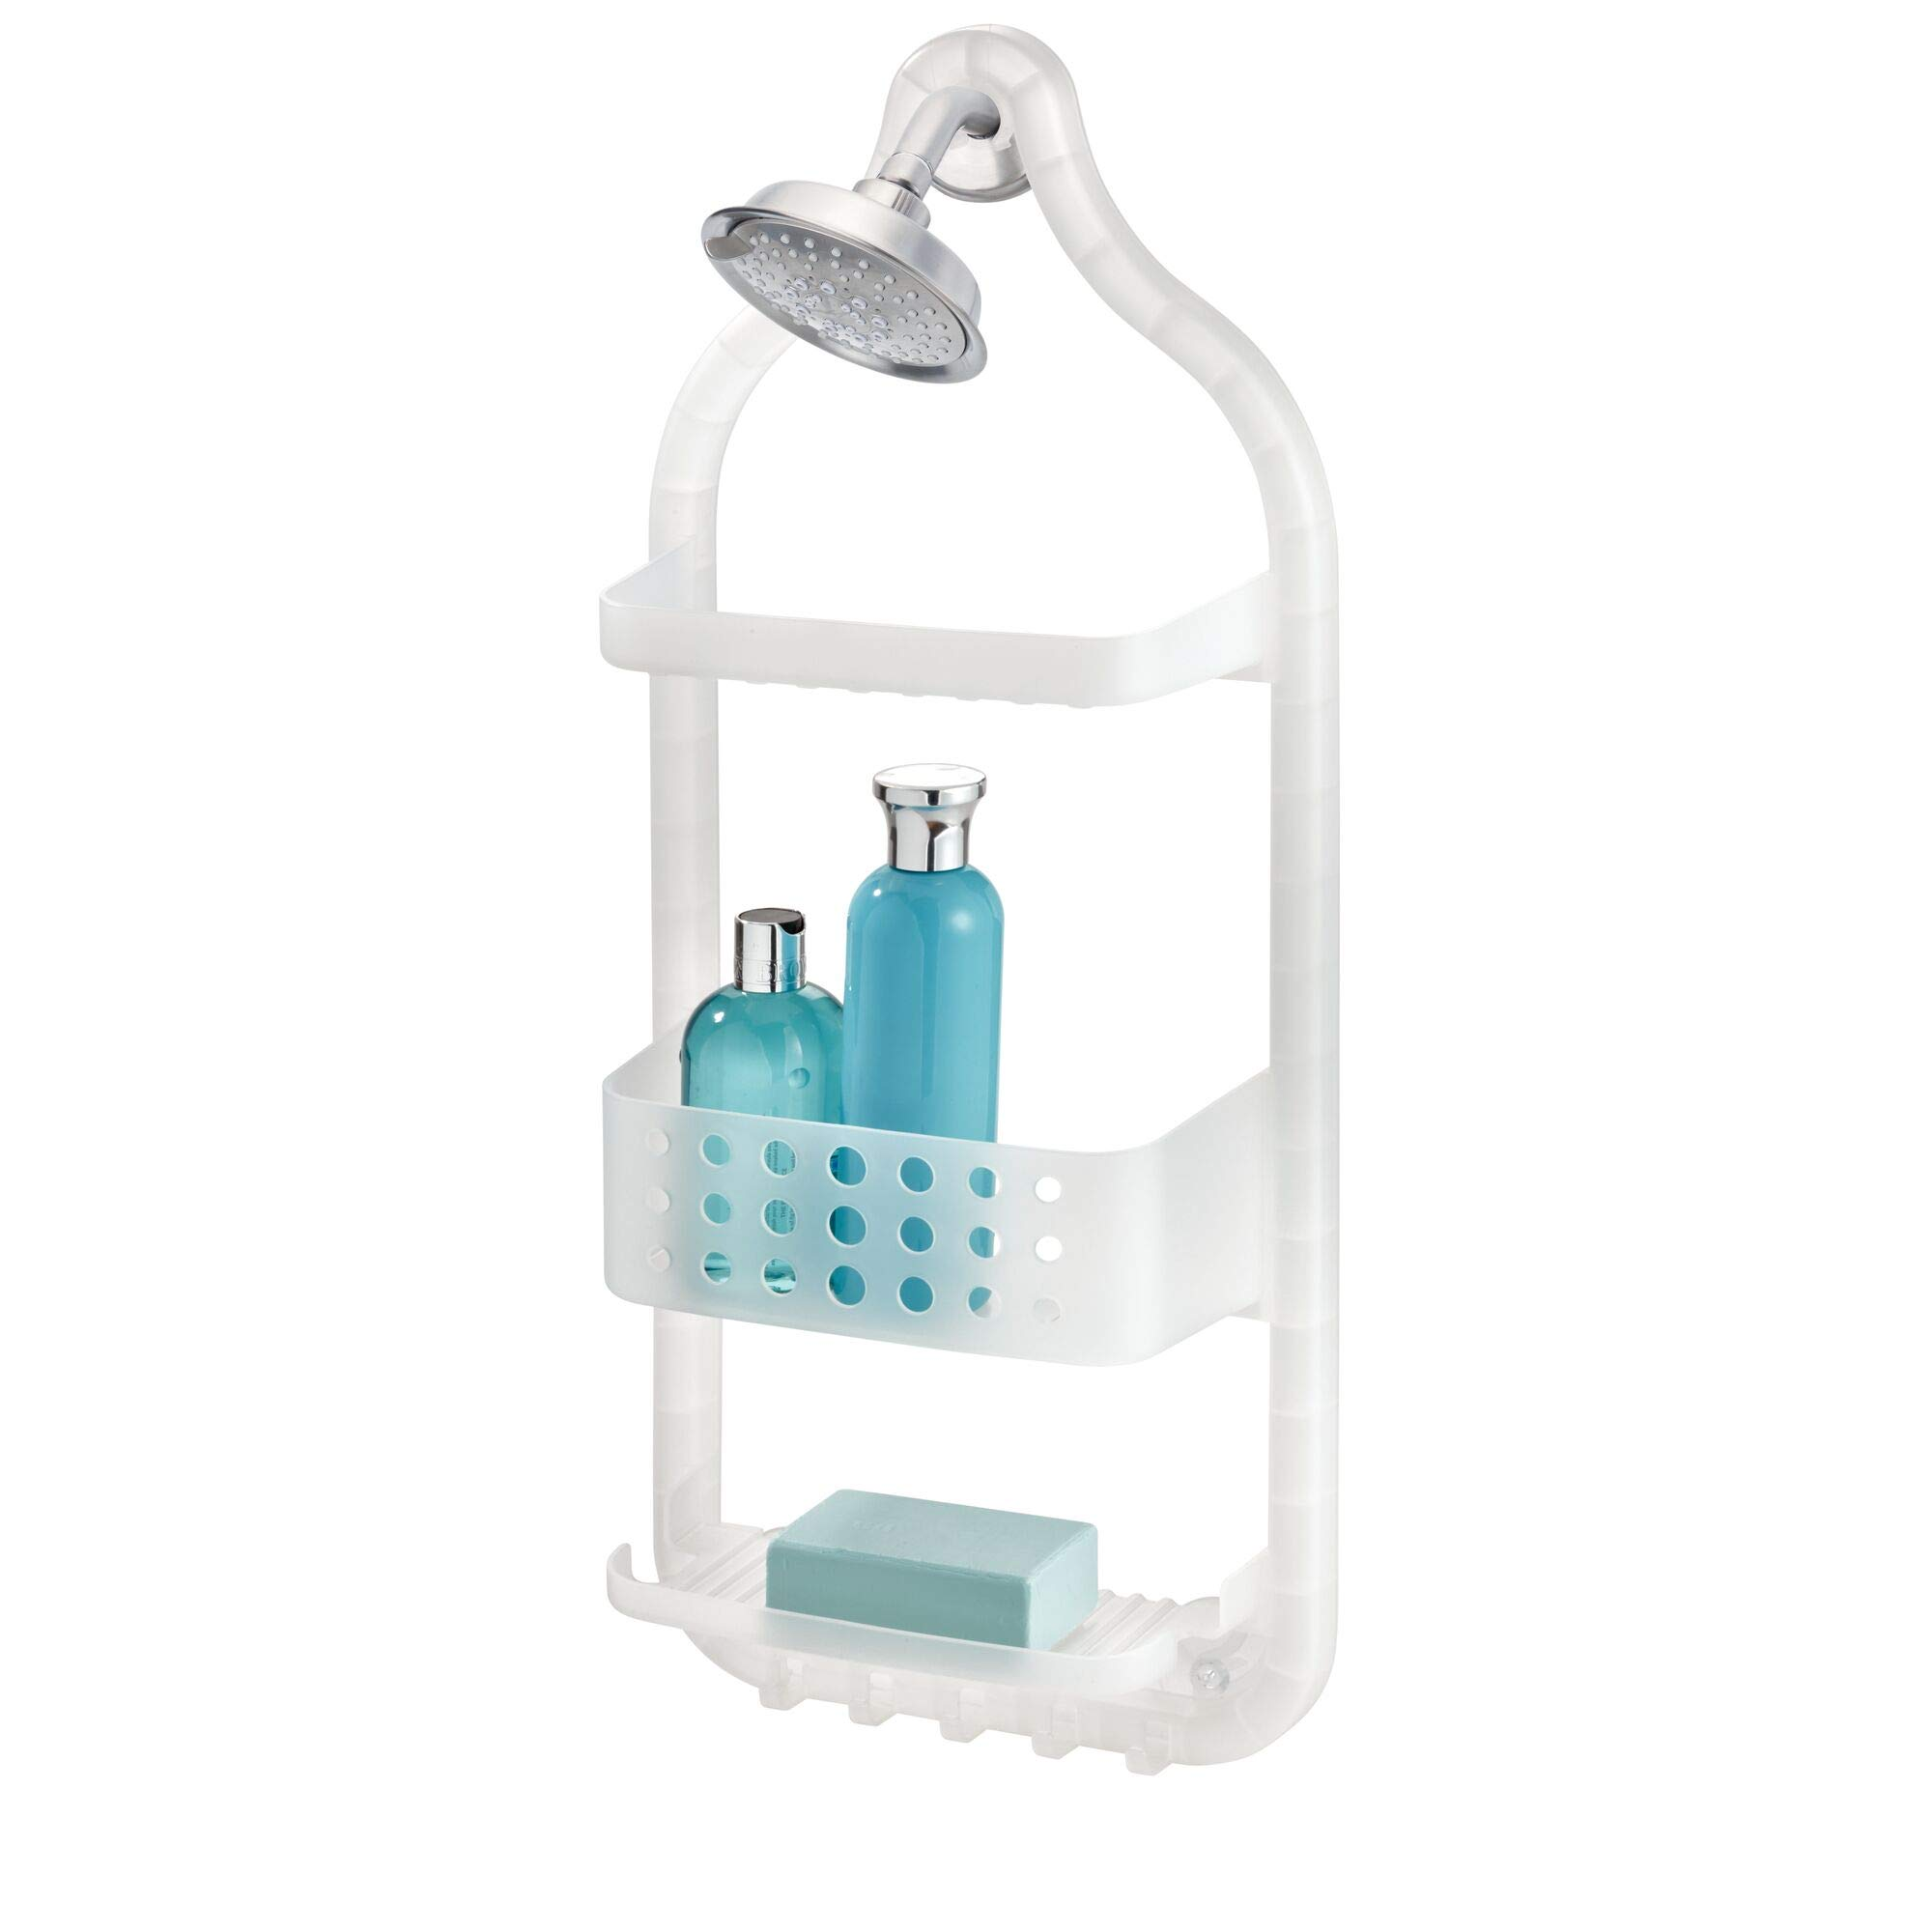 InterDesign Circlz Plastic Hanging Shower Caddy, Extra Space for Shampoo, Conditioner, and Soap with Hooks for Razors, Towels, Loofahs, and More 5'' x 10.6'' x 26'' Frost White